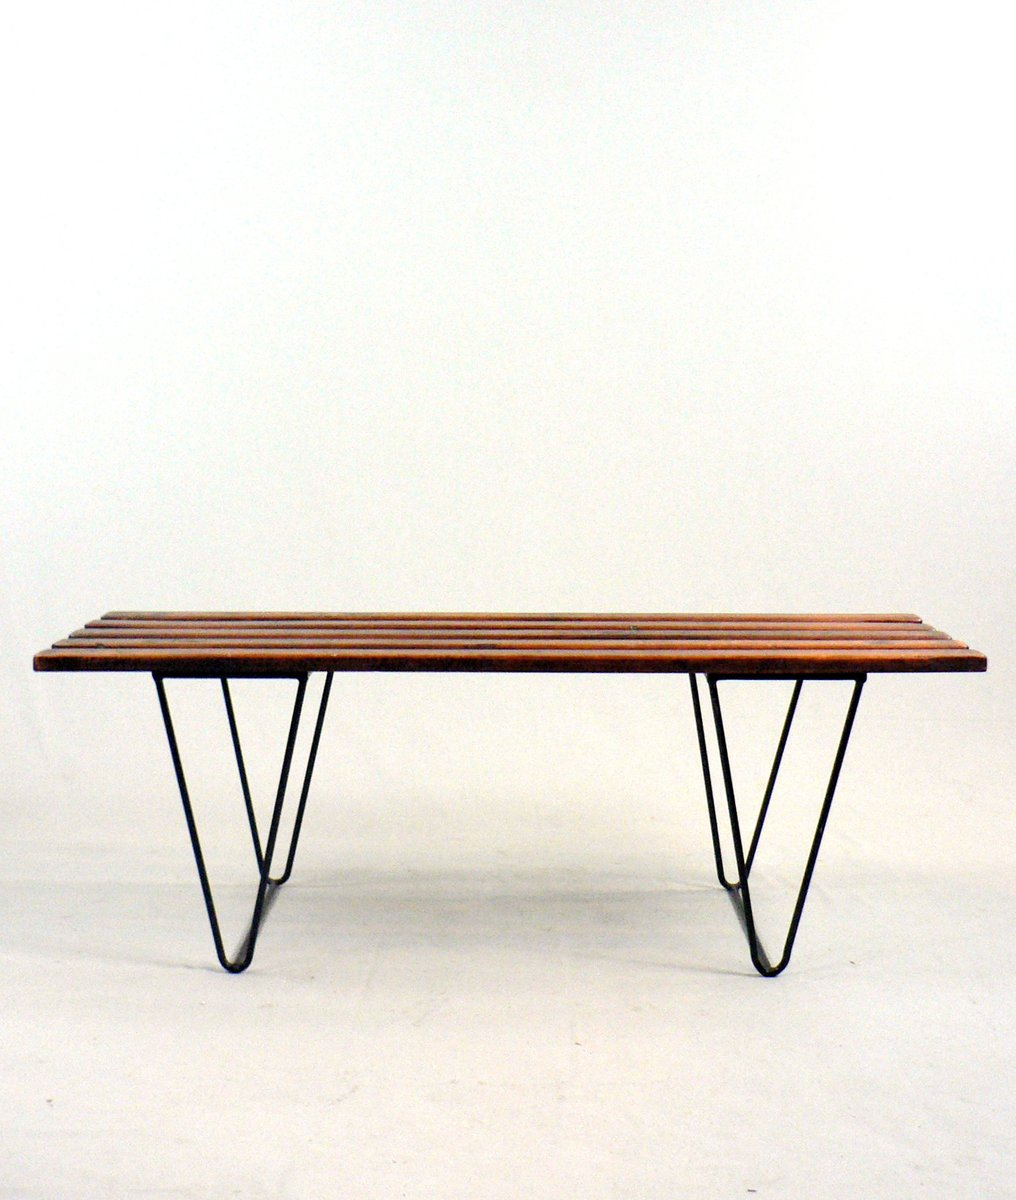 Slat Coffee Table Or Bench 1950s For Sale At Pamono